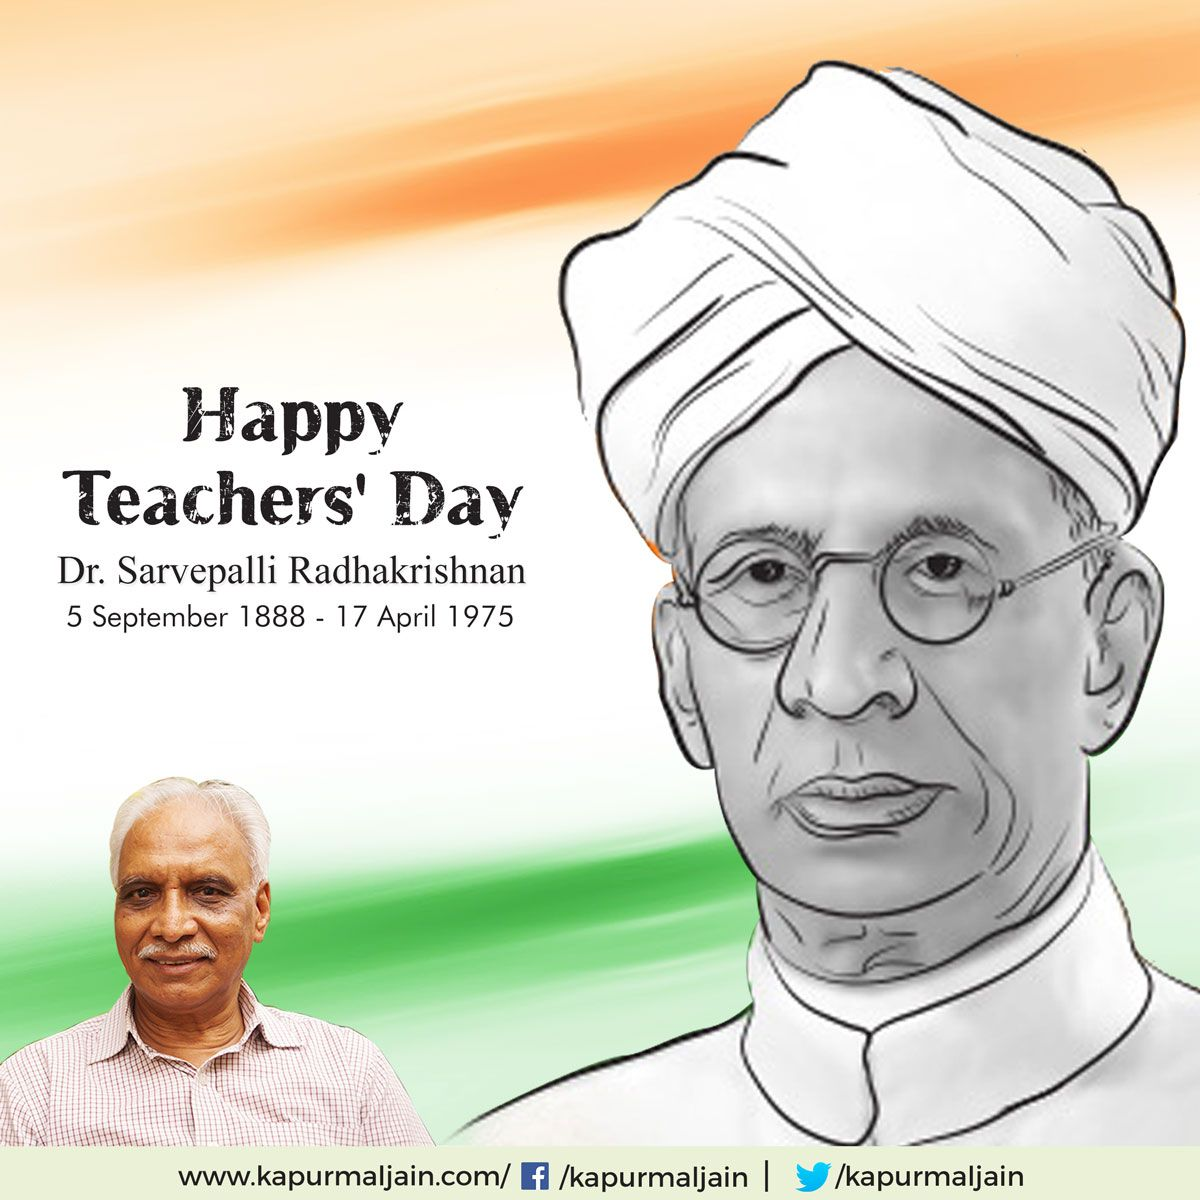 Today Is The Birthday Of Dr Sarvepalli Radhakrishnan Celebrated As Teacher S Day A Proud Day For All Happy Teachers Day Teachers Day Hearty Congratulations